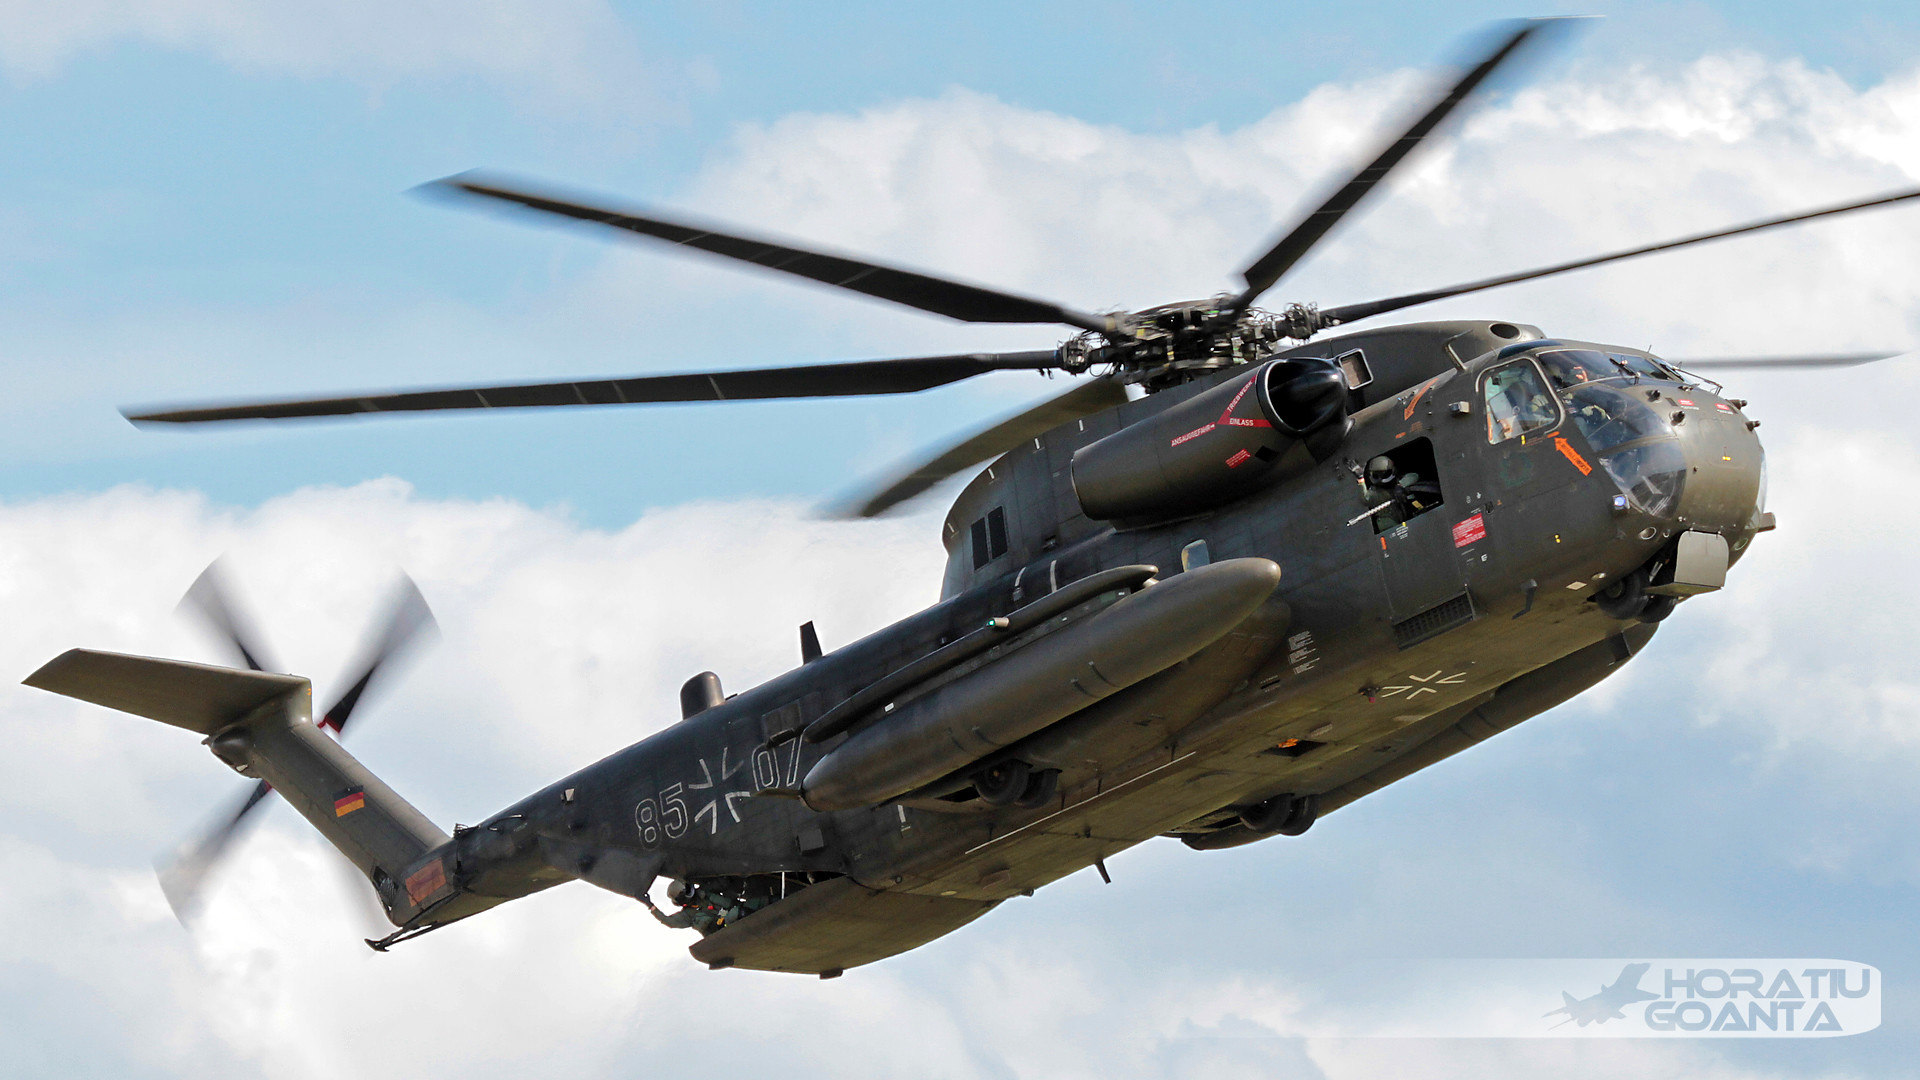 Helicopter Full Hd Wallpaper Luftwaffe Wallpaper 65 Images